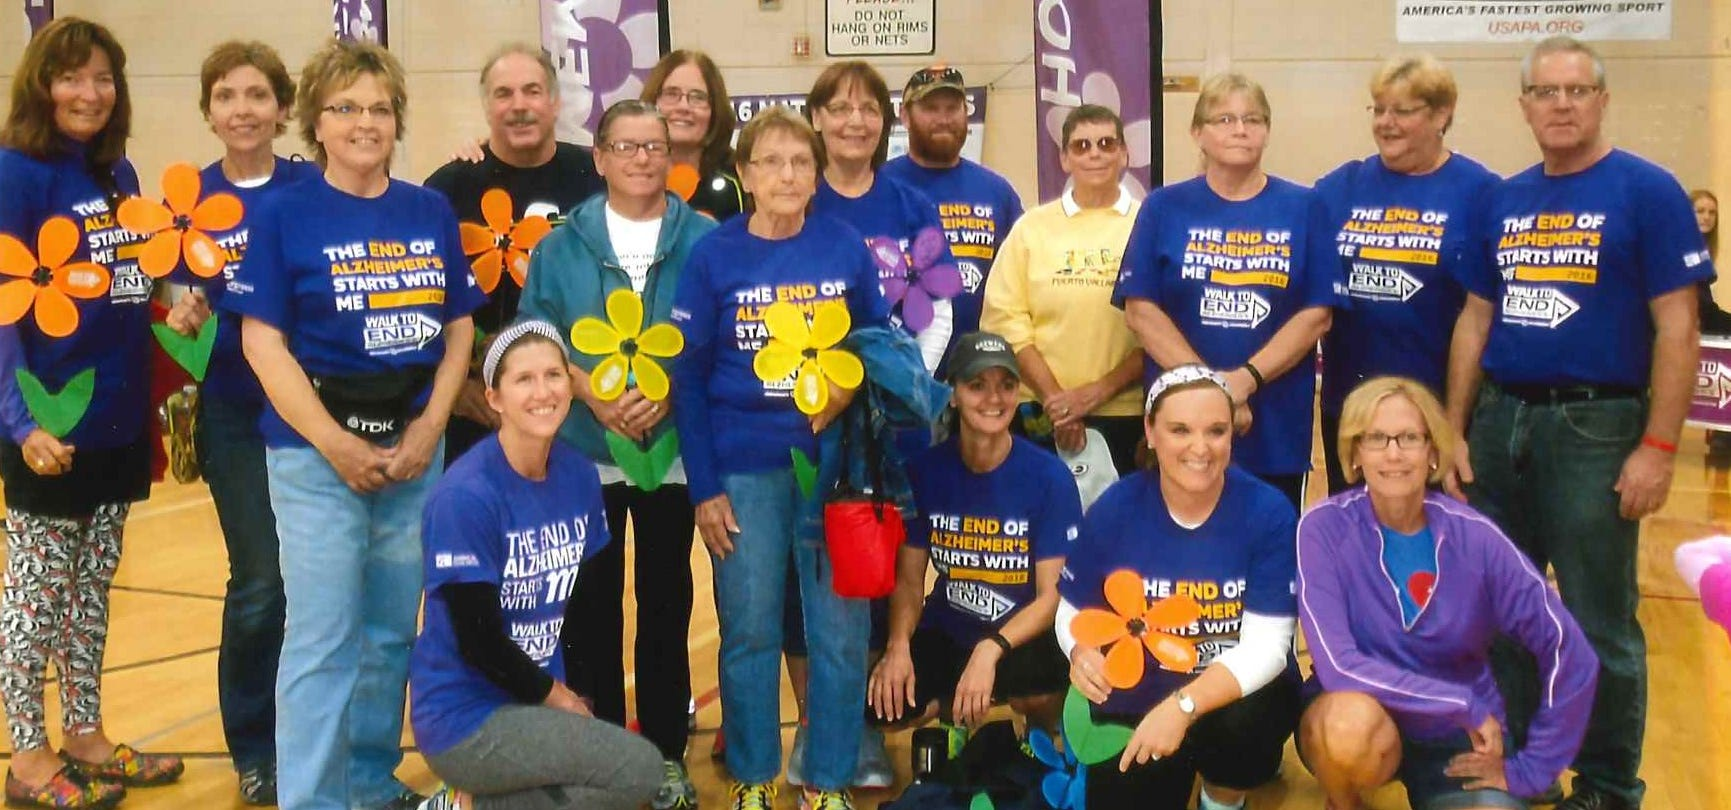 """Paul Jagemann's Walk to End Alzheimer's team, """"Paul's Posse,"""" in September 2016, the year before he died. The team was the top fundraising team that year. Paul is far right, his wife Nan is left with light jeans, daughter Erin is kneeling second from right with her husband, Robin, in the back row wearing sunglasses and hat. Son Tony was unable to attend the walk that year."""